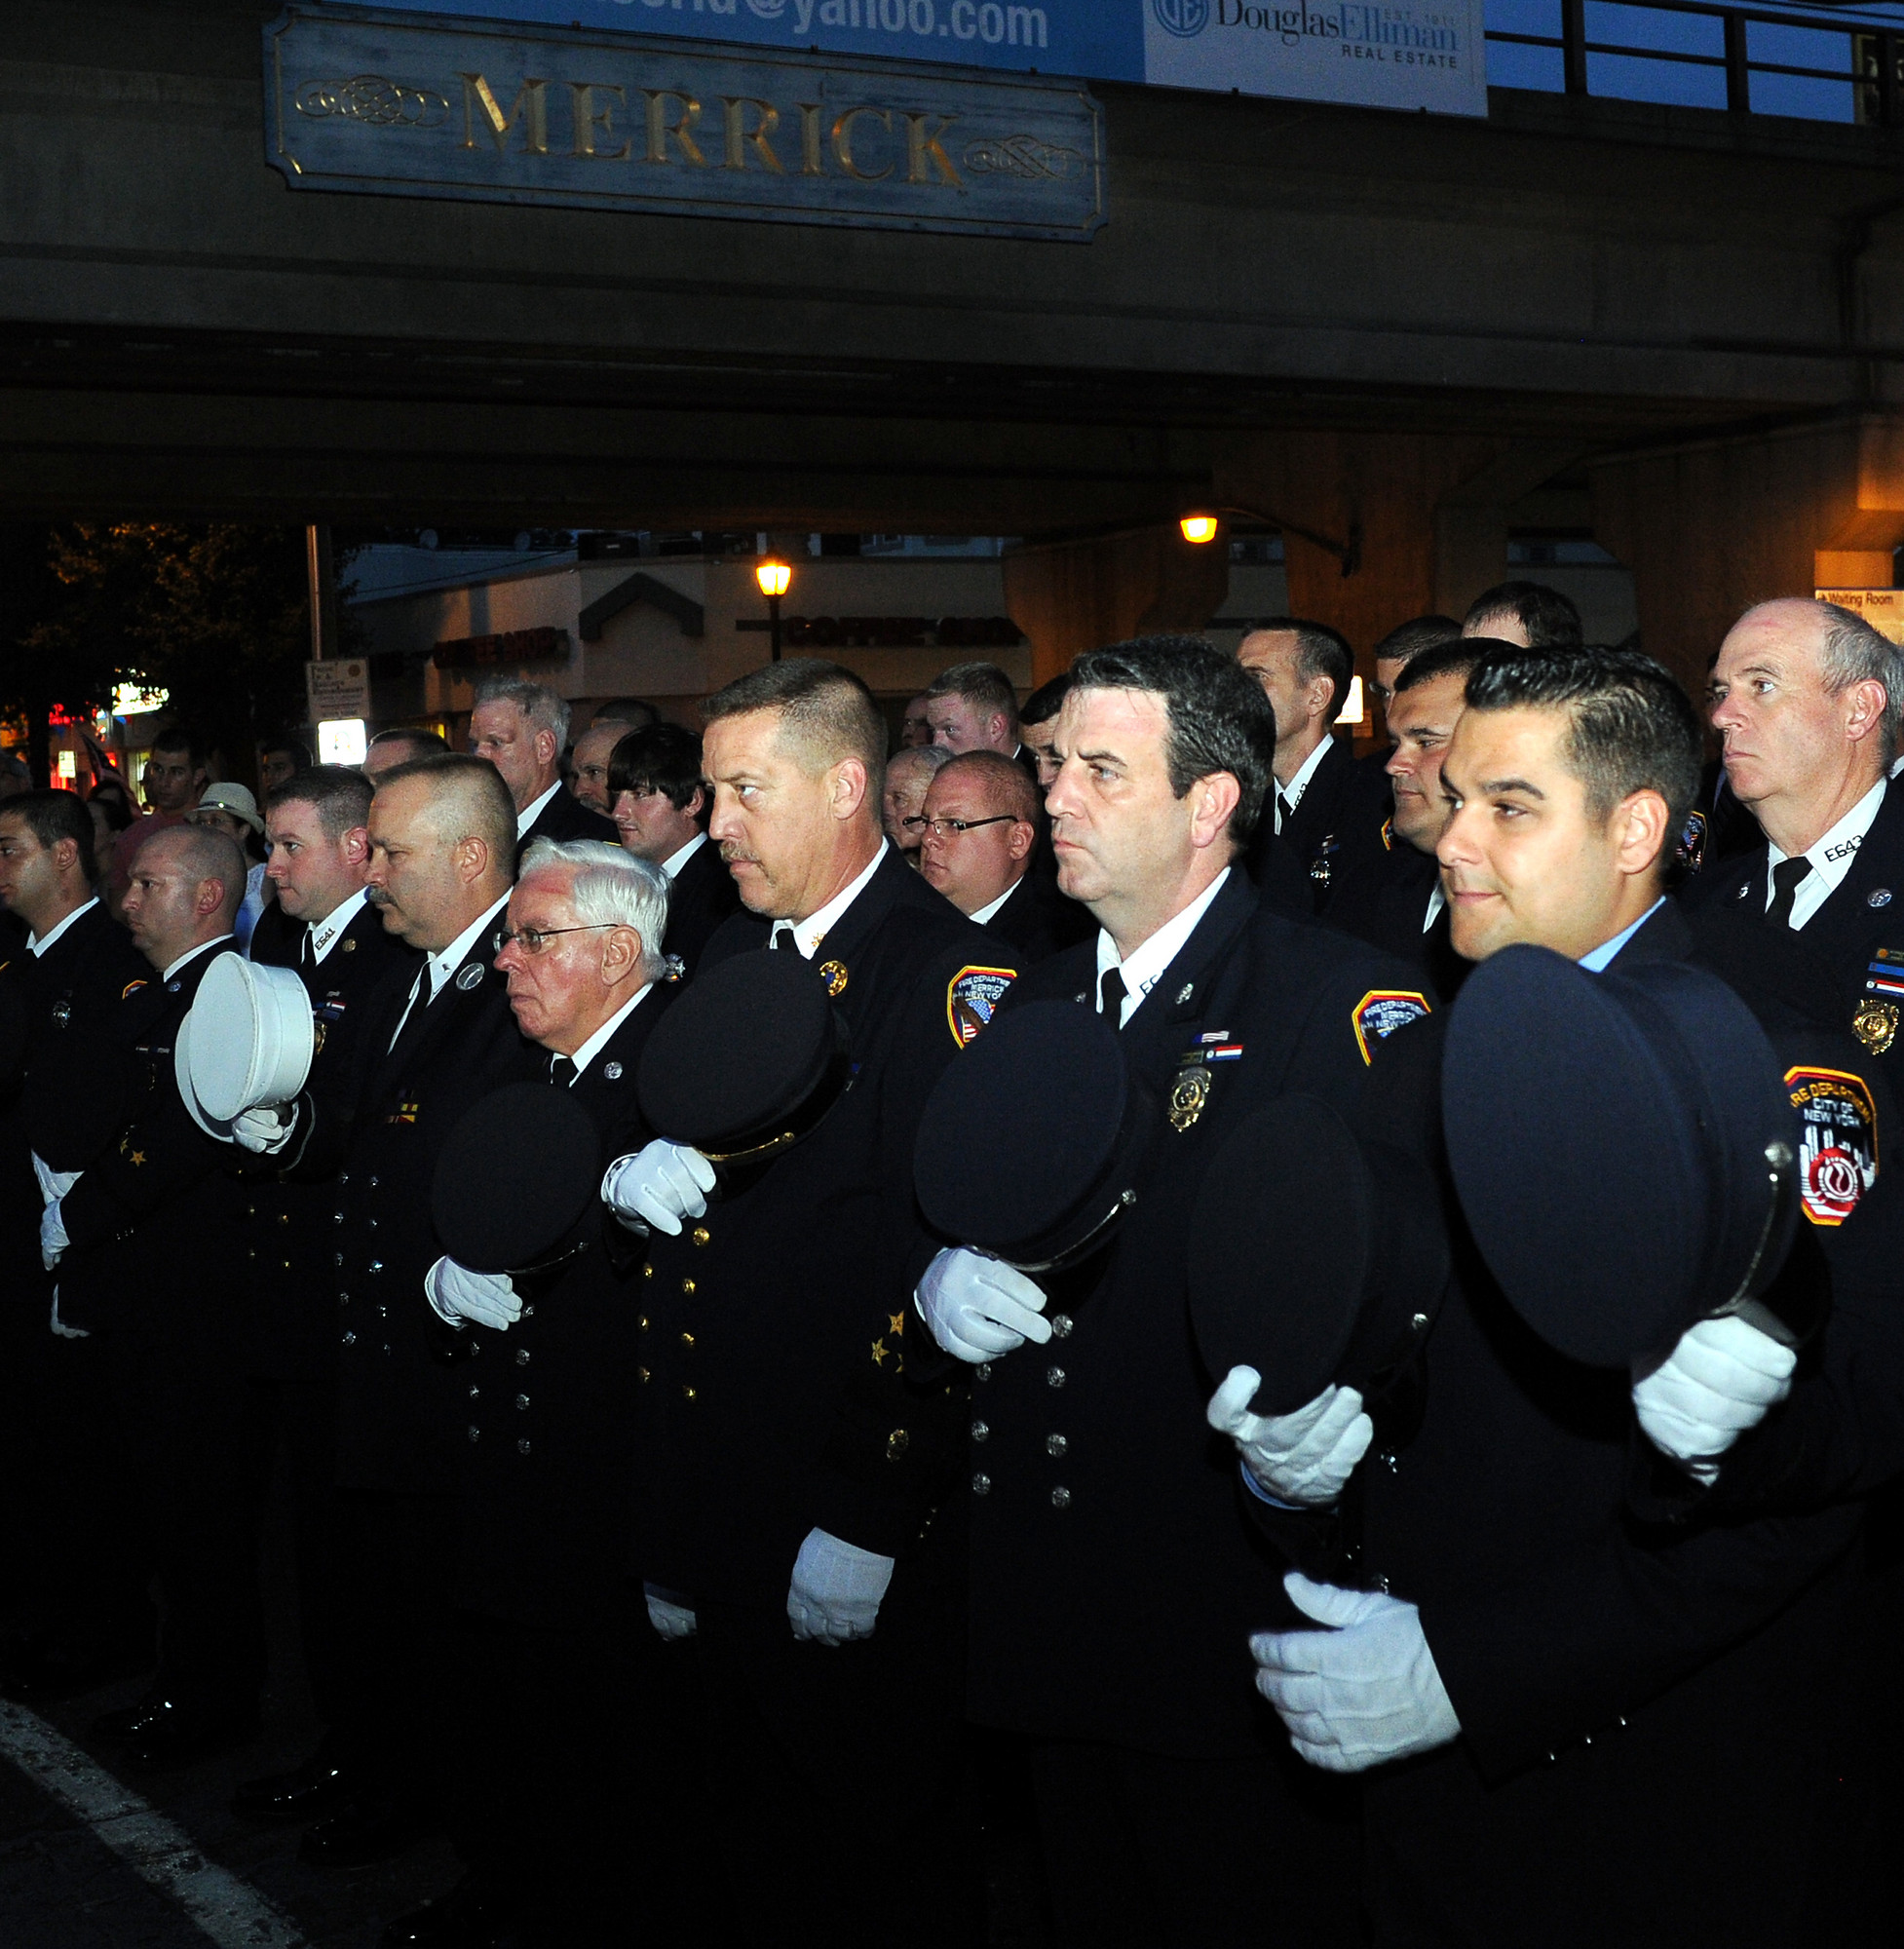 Merrick Fire Department members removed their caps during the service.